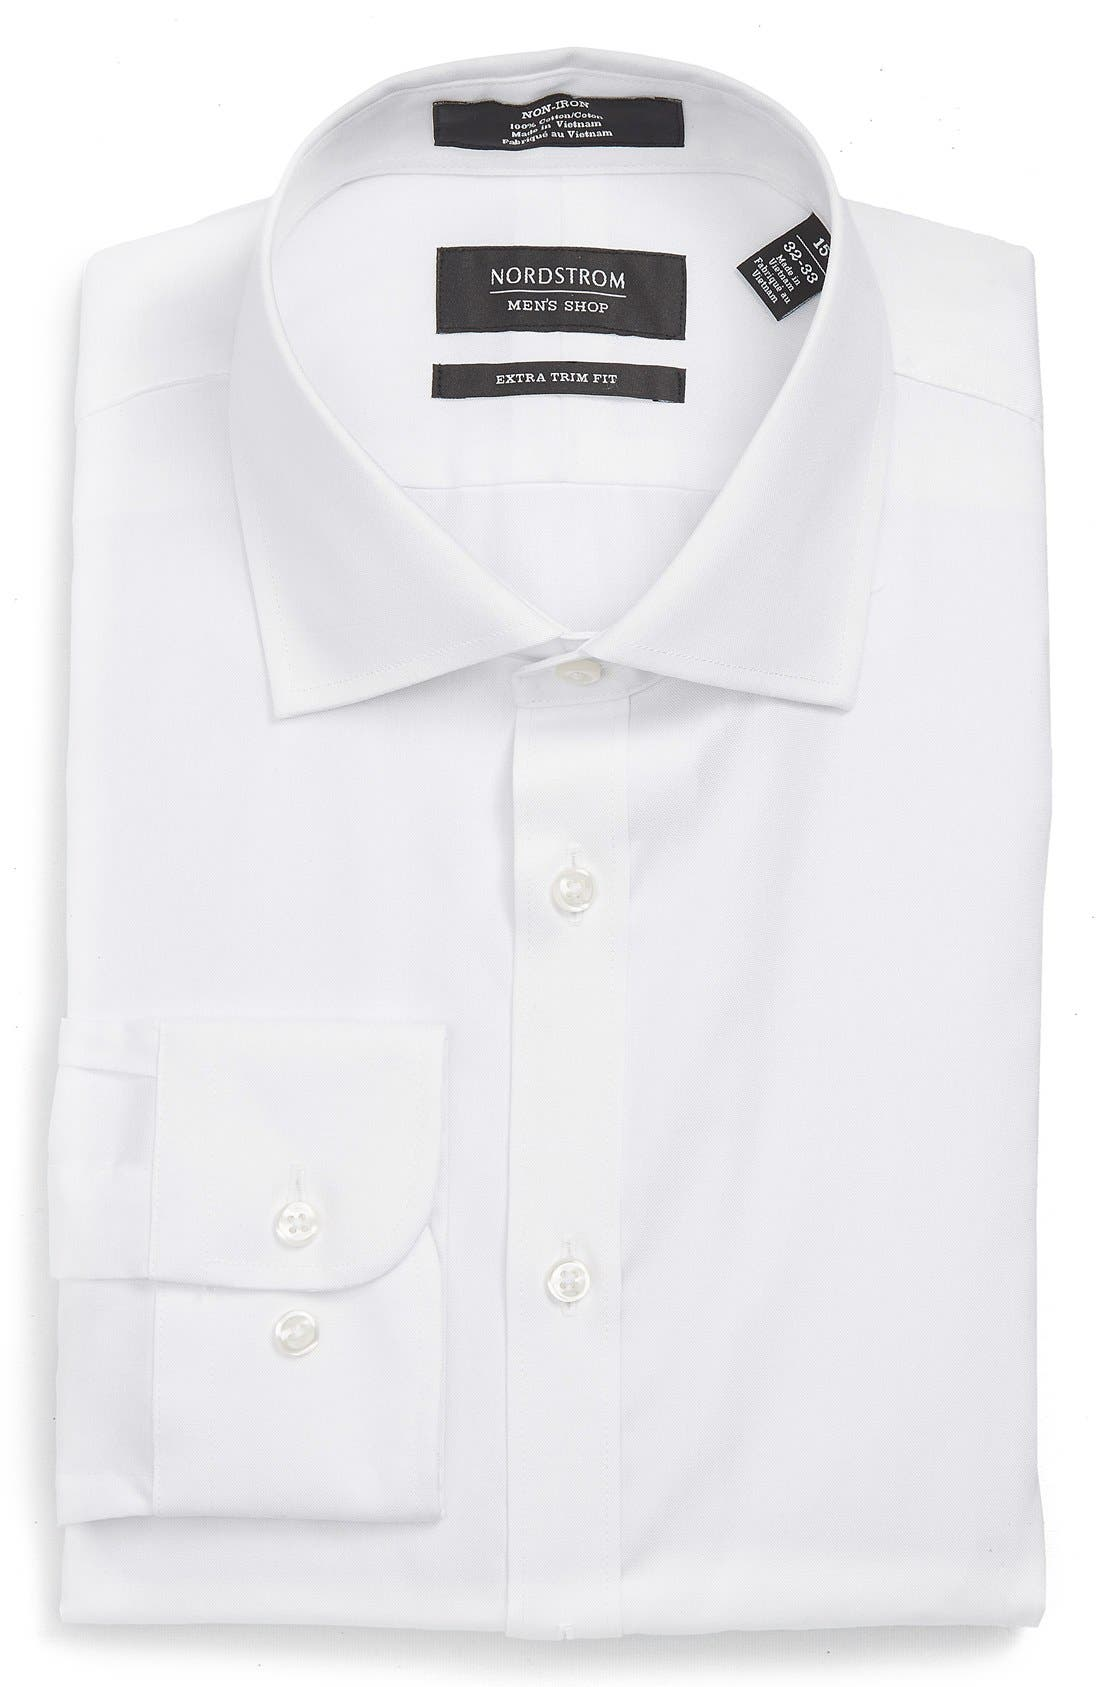 Main Image - Nordstrom Men's Shop Extra Trim Fit Non-Iron Solid Dress Shirt